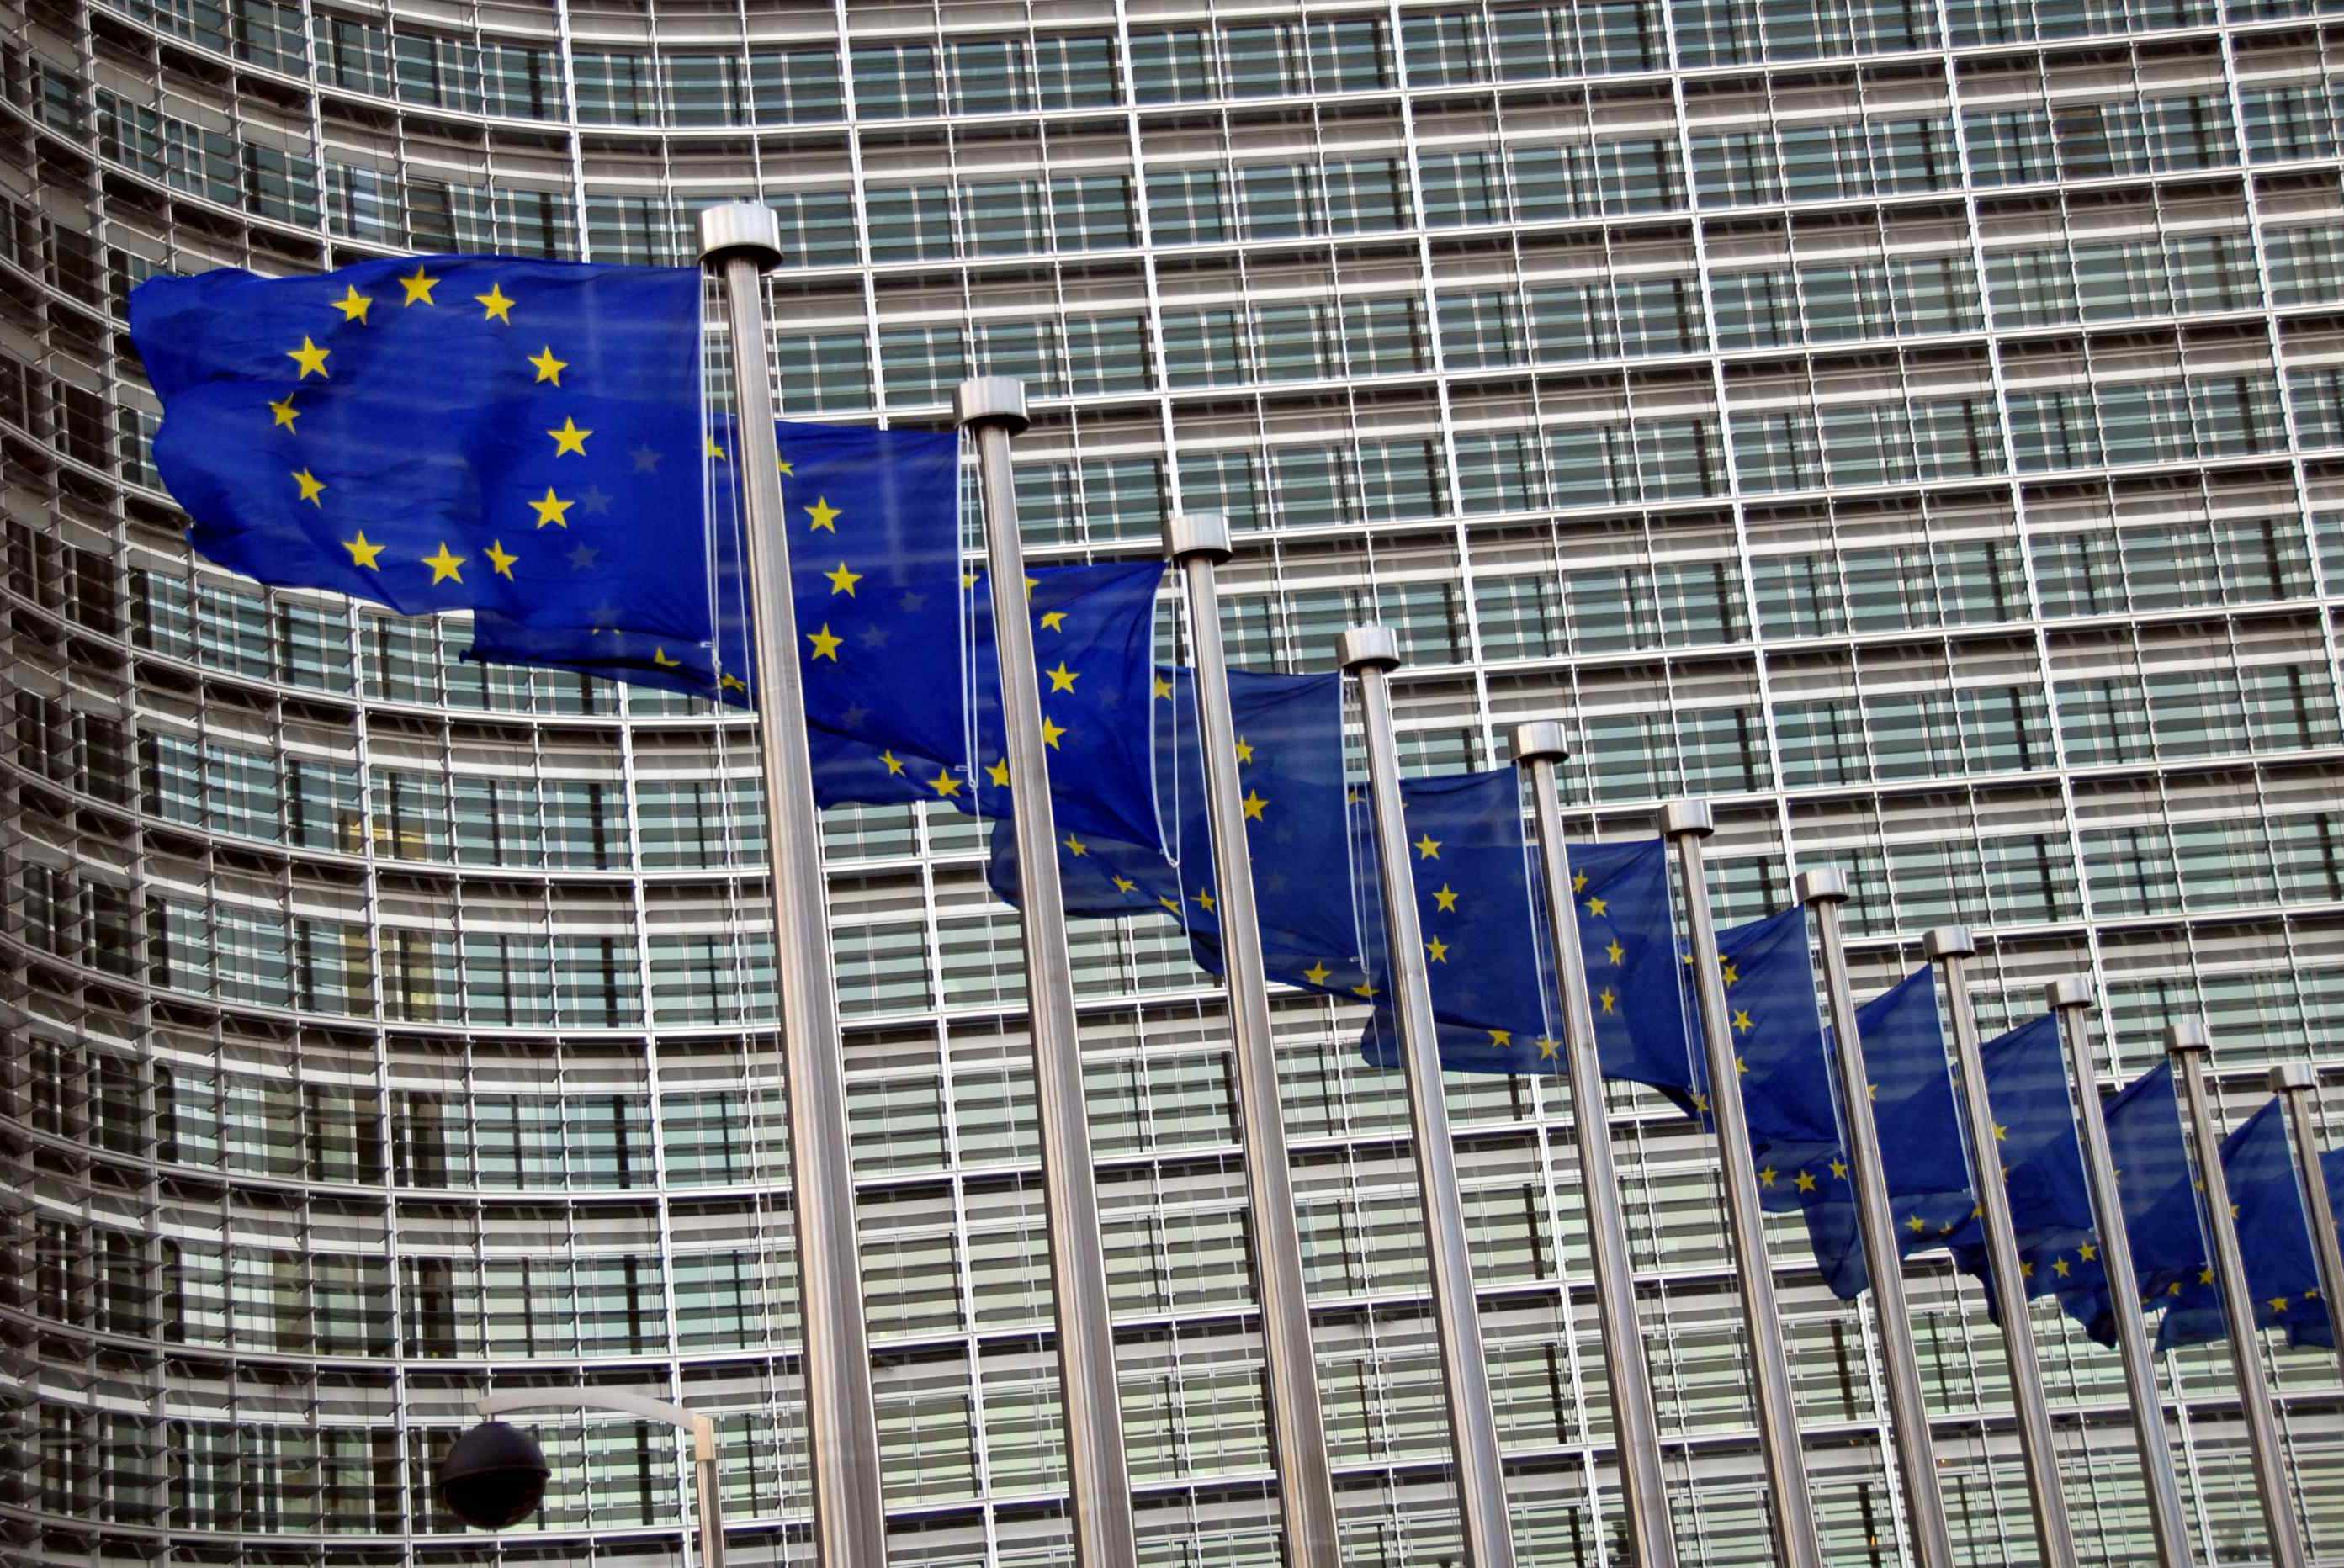 Commission warns Slovenia for not complying with EU regulations